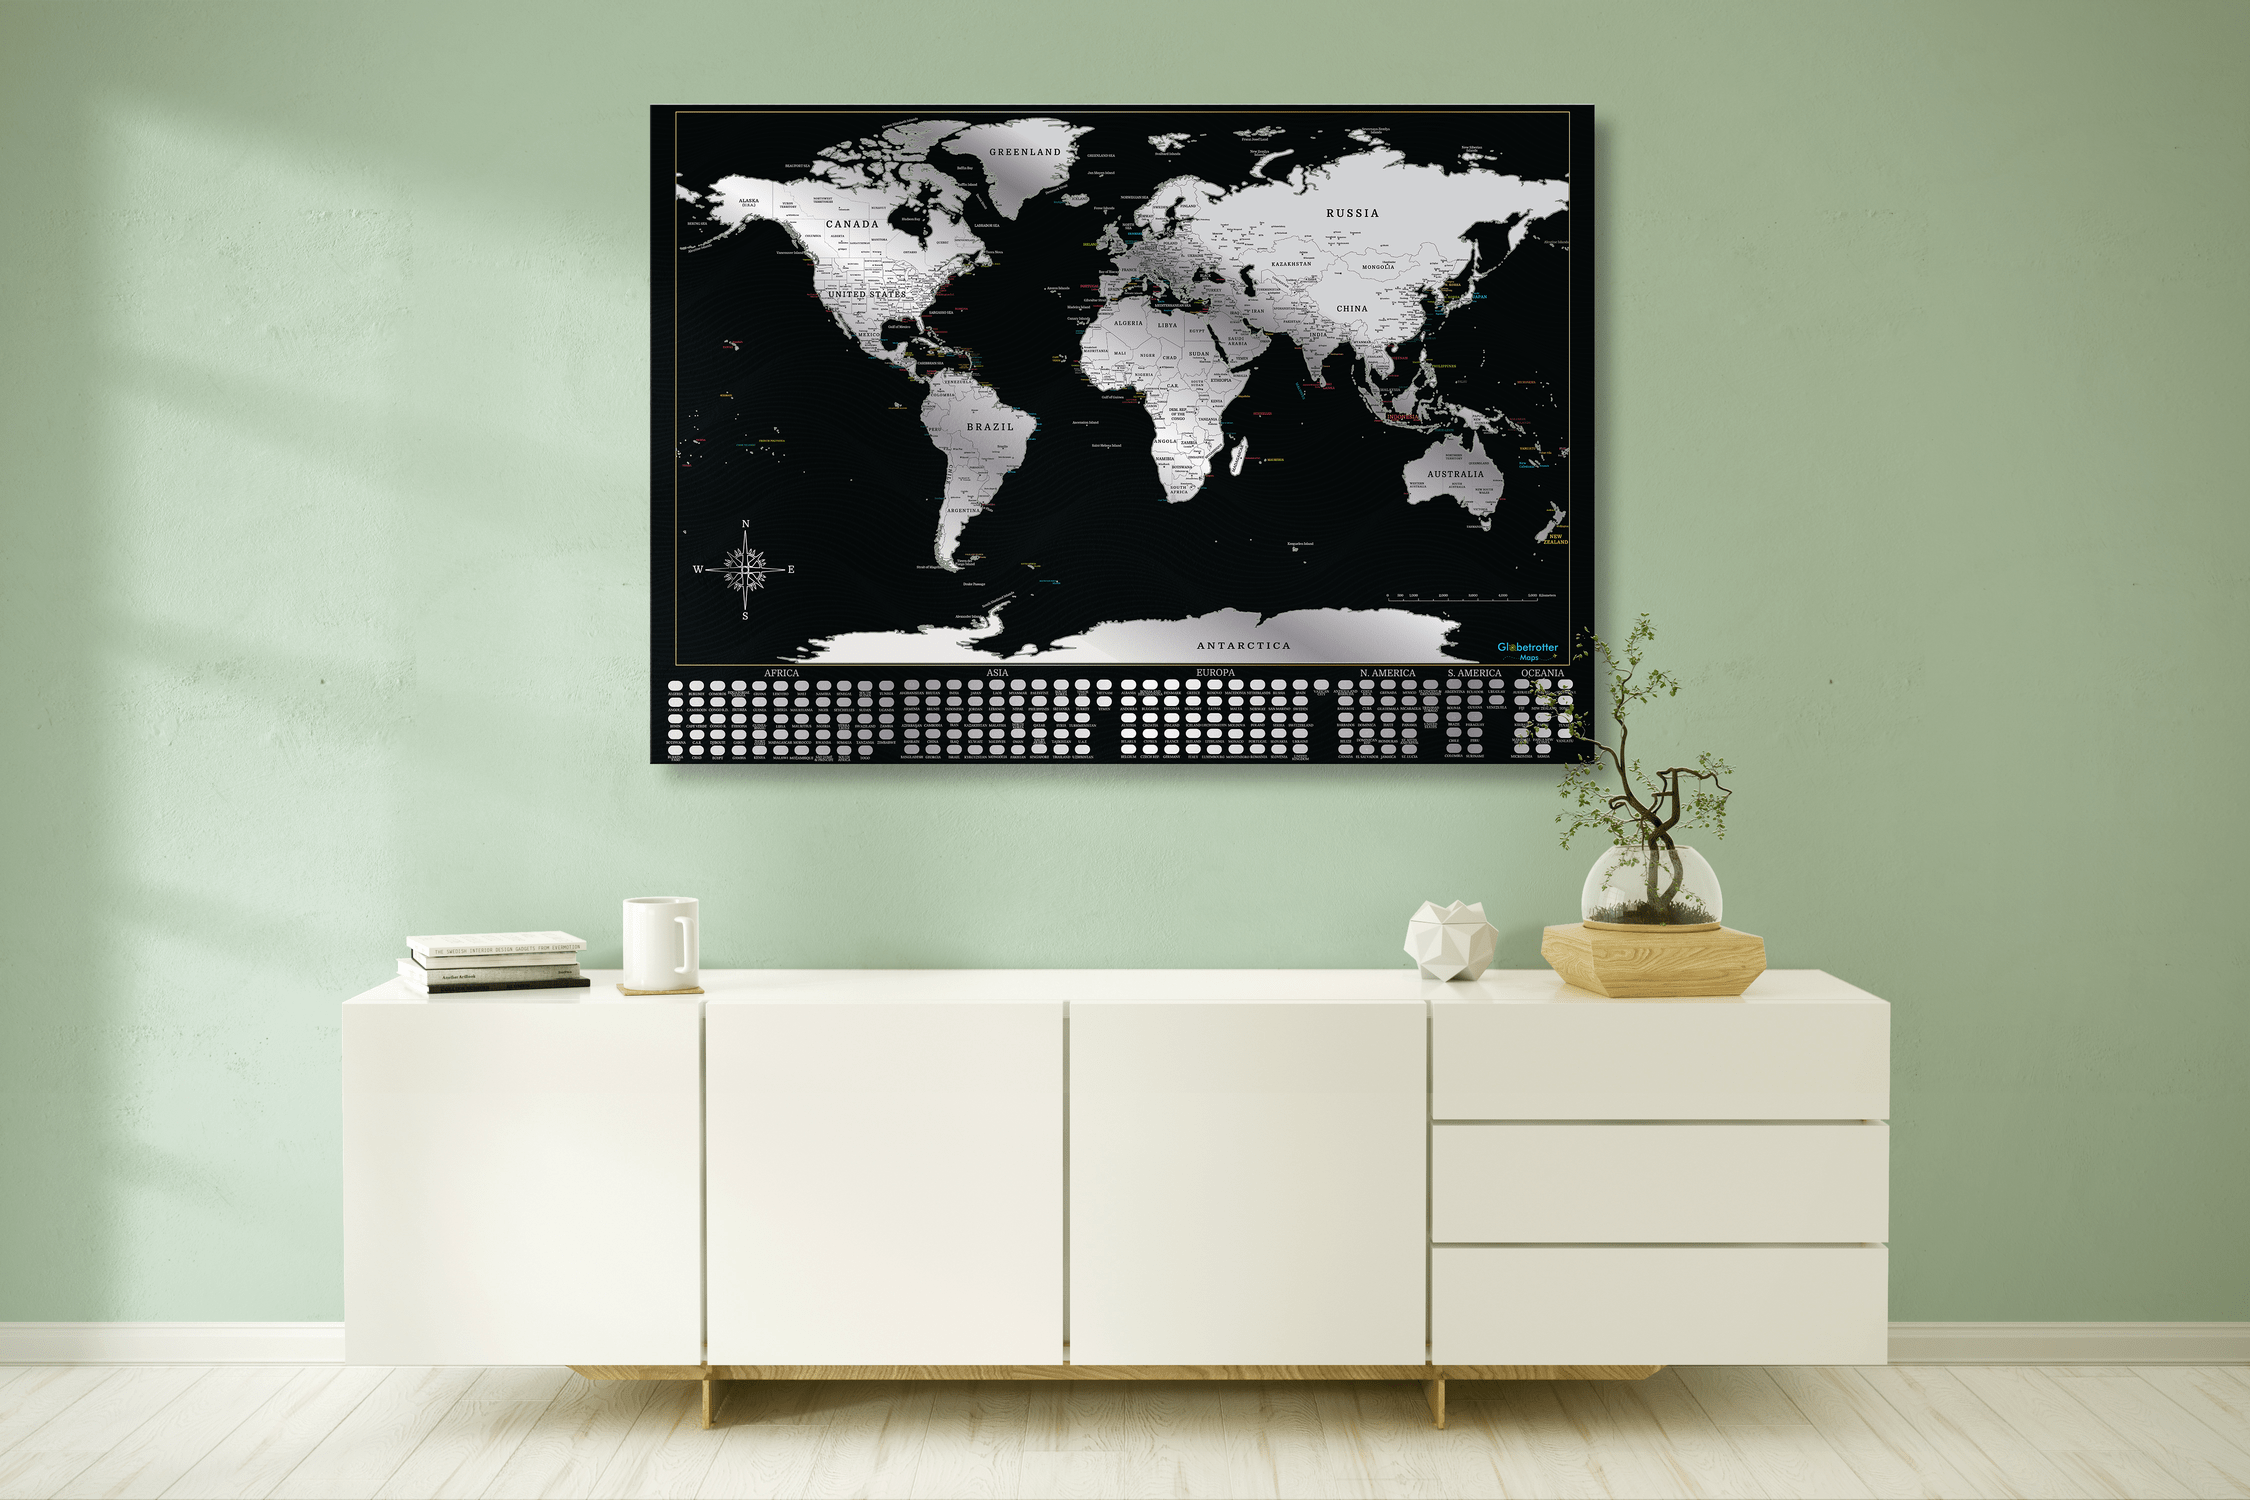 Globetrotter maps scratchable world map globetrotter works globetrotter maps scratchable world map gumiabroncs Image collections